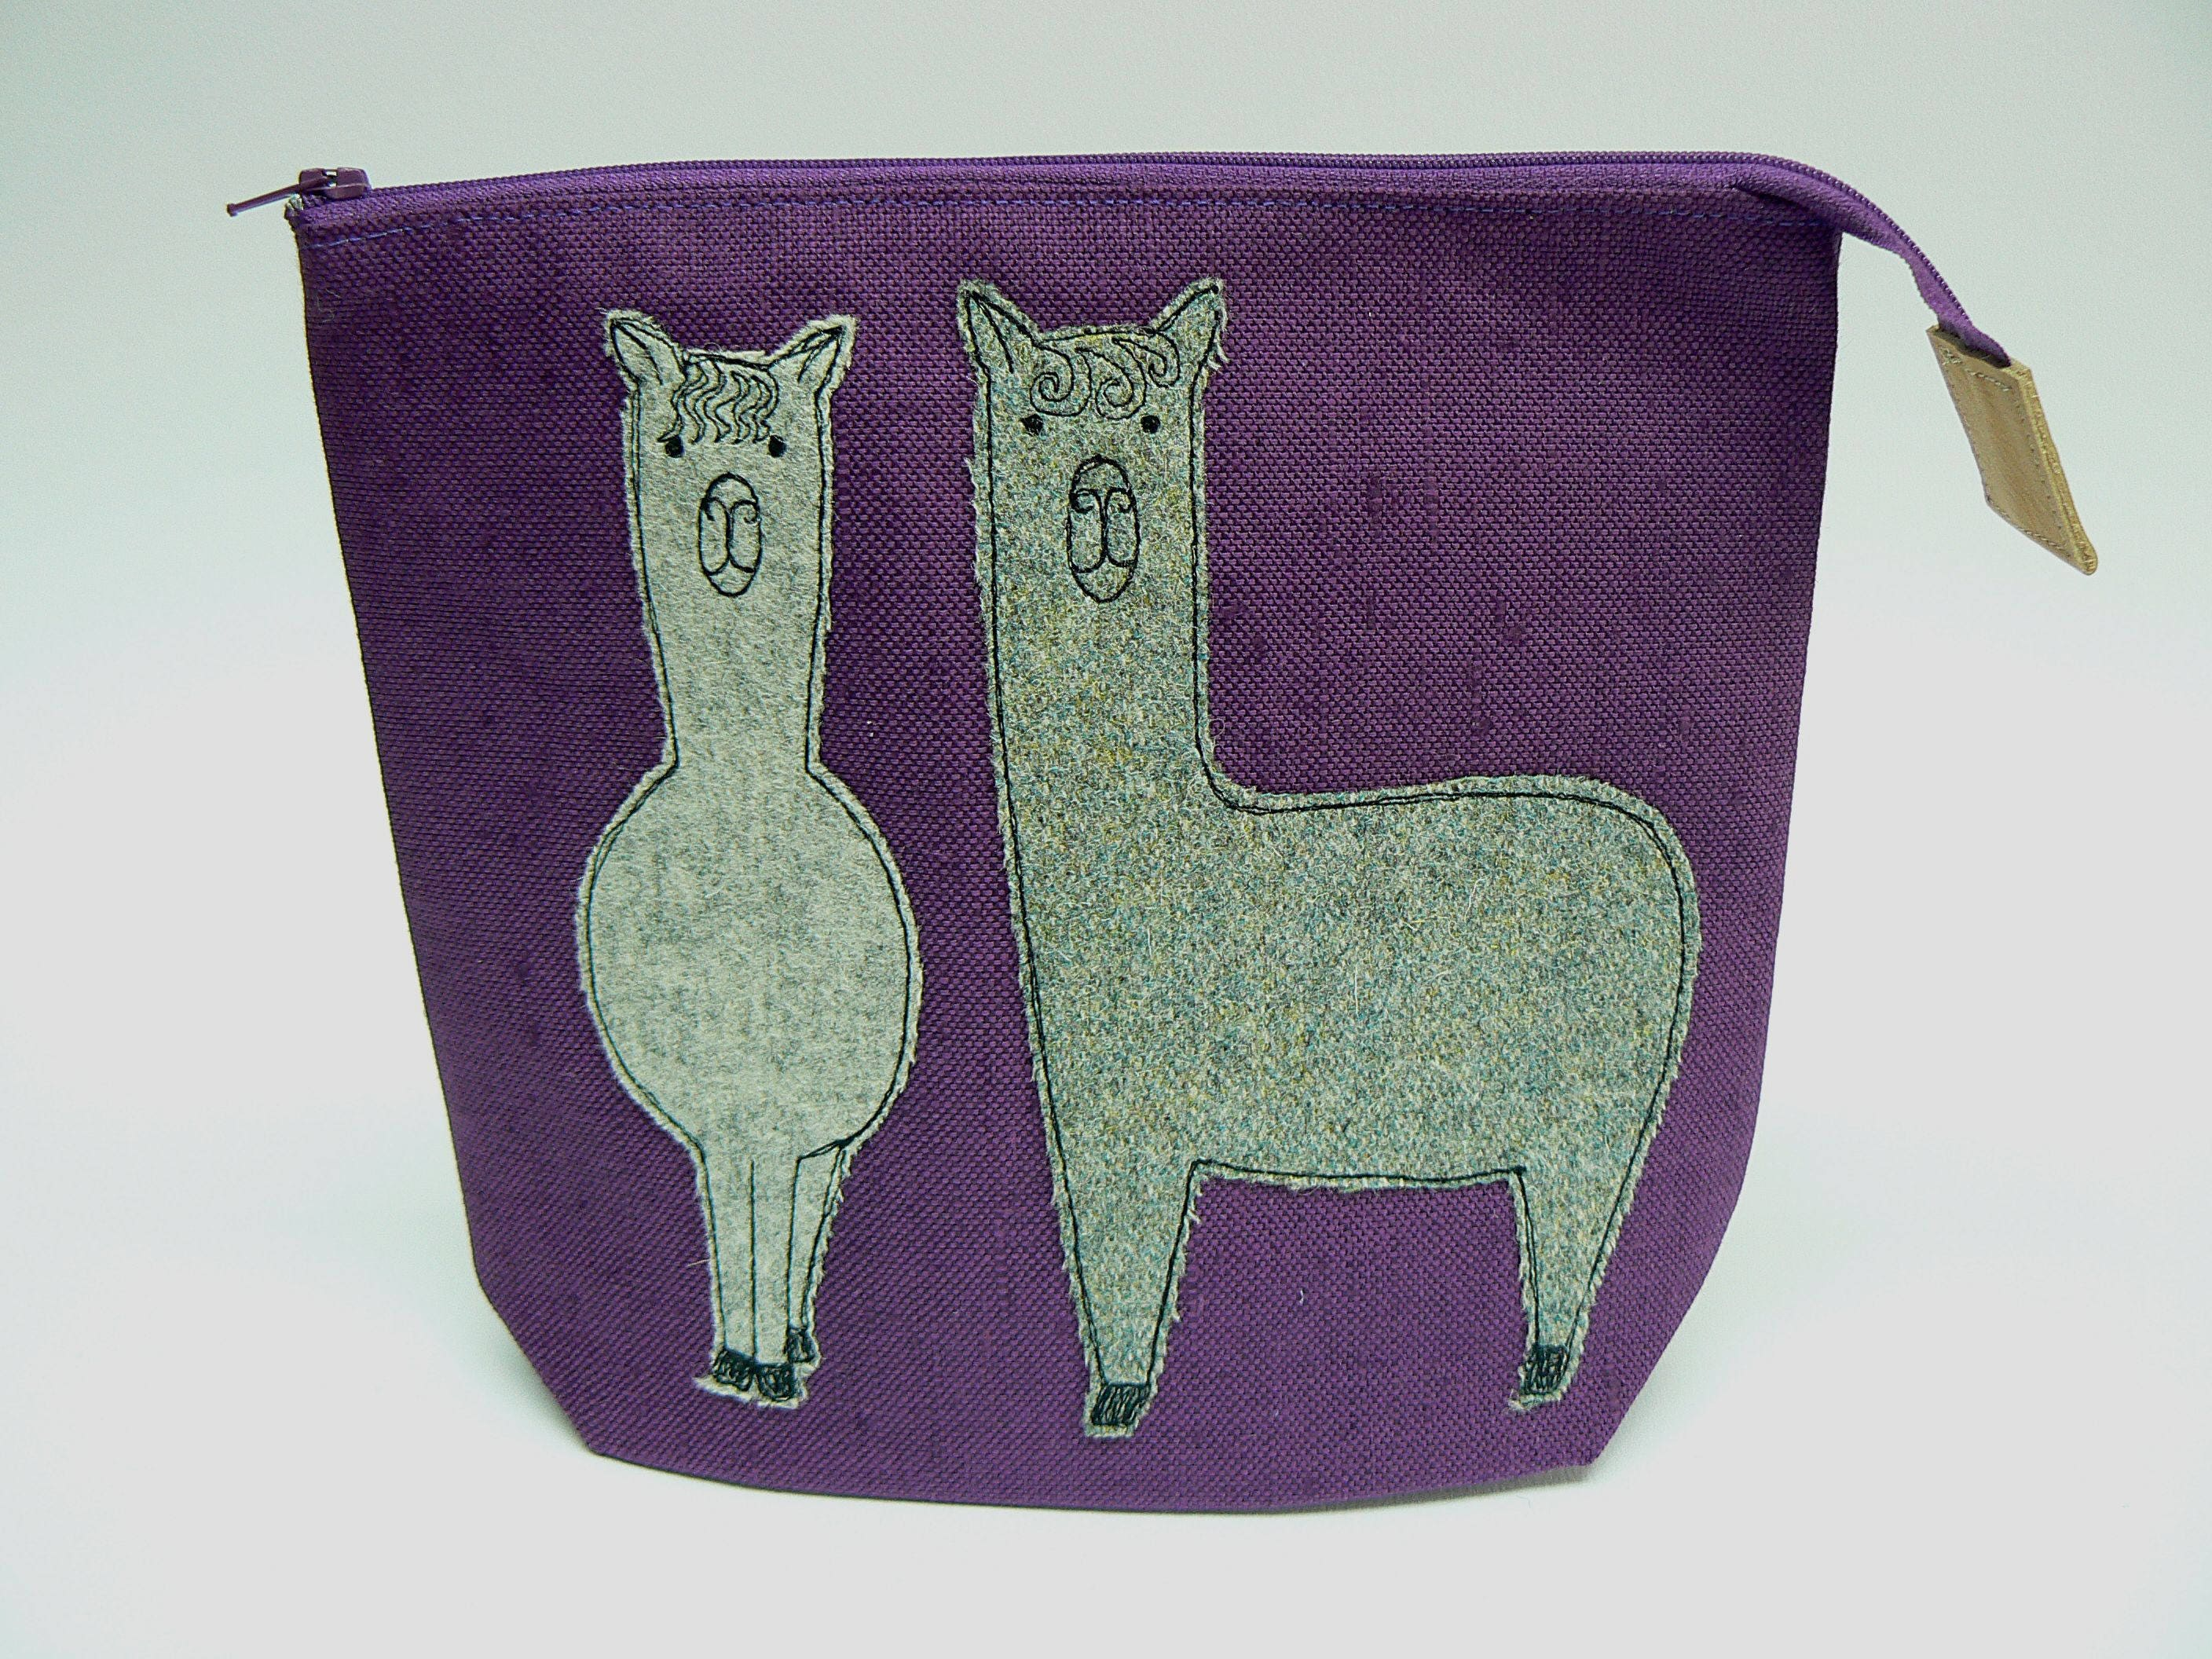 Tweedy Alpaca applique zipped pouch small project bag sock knitting bag